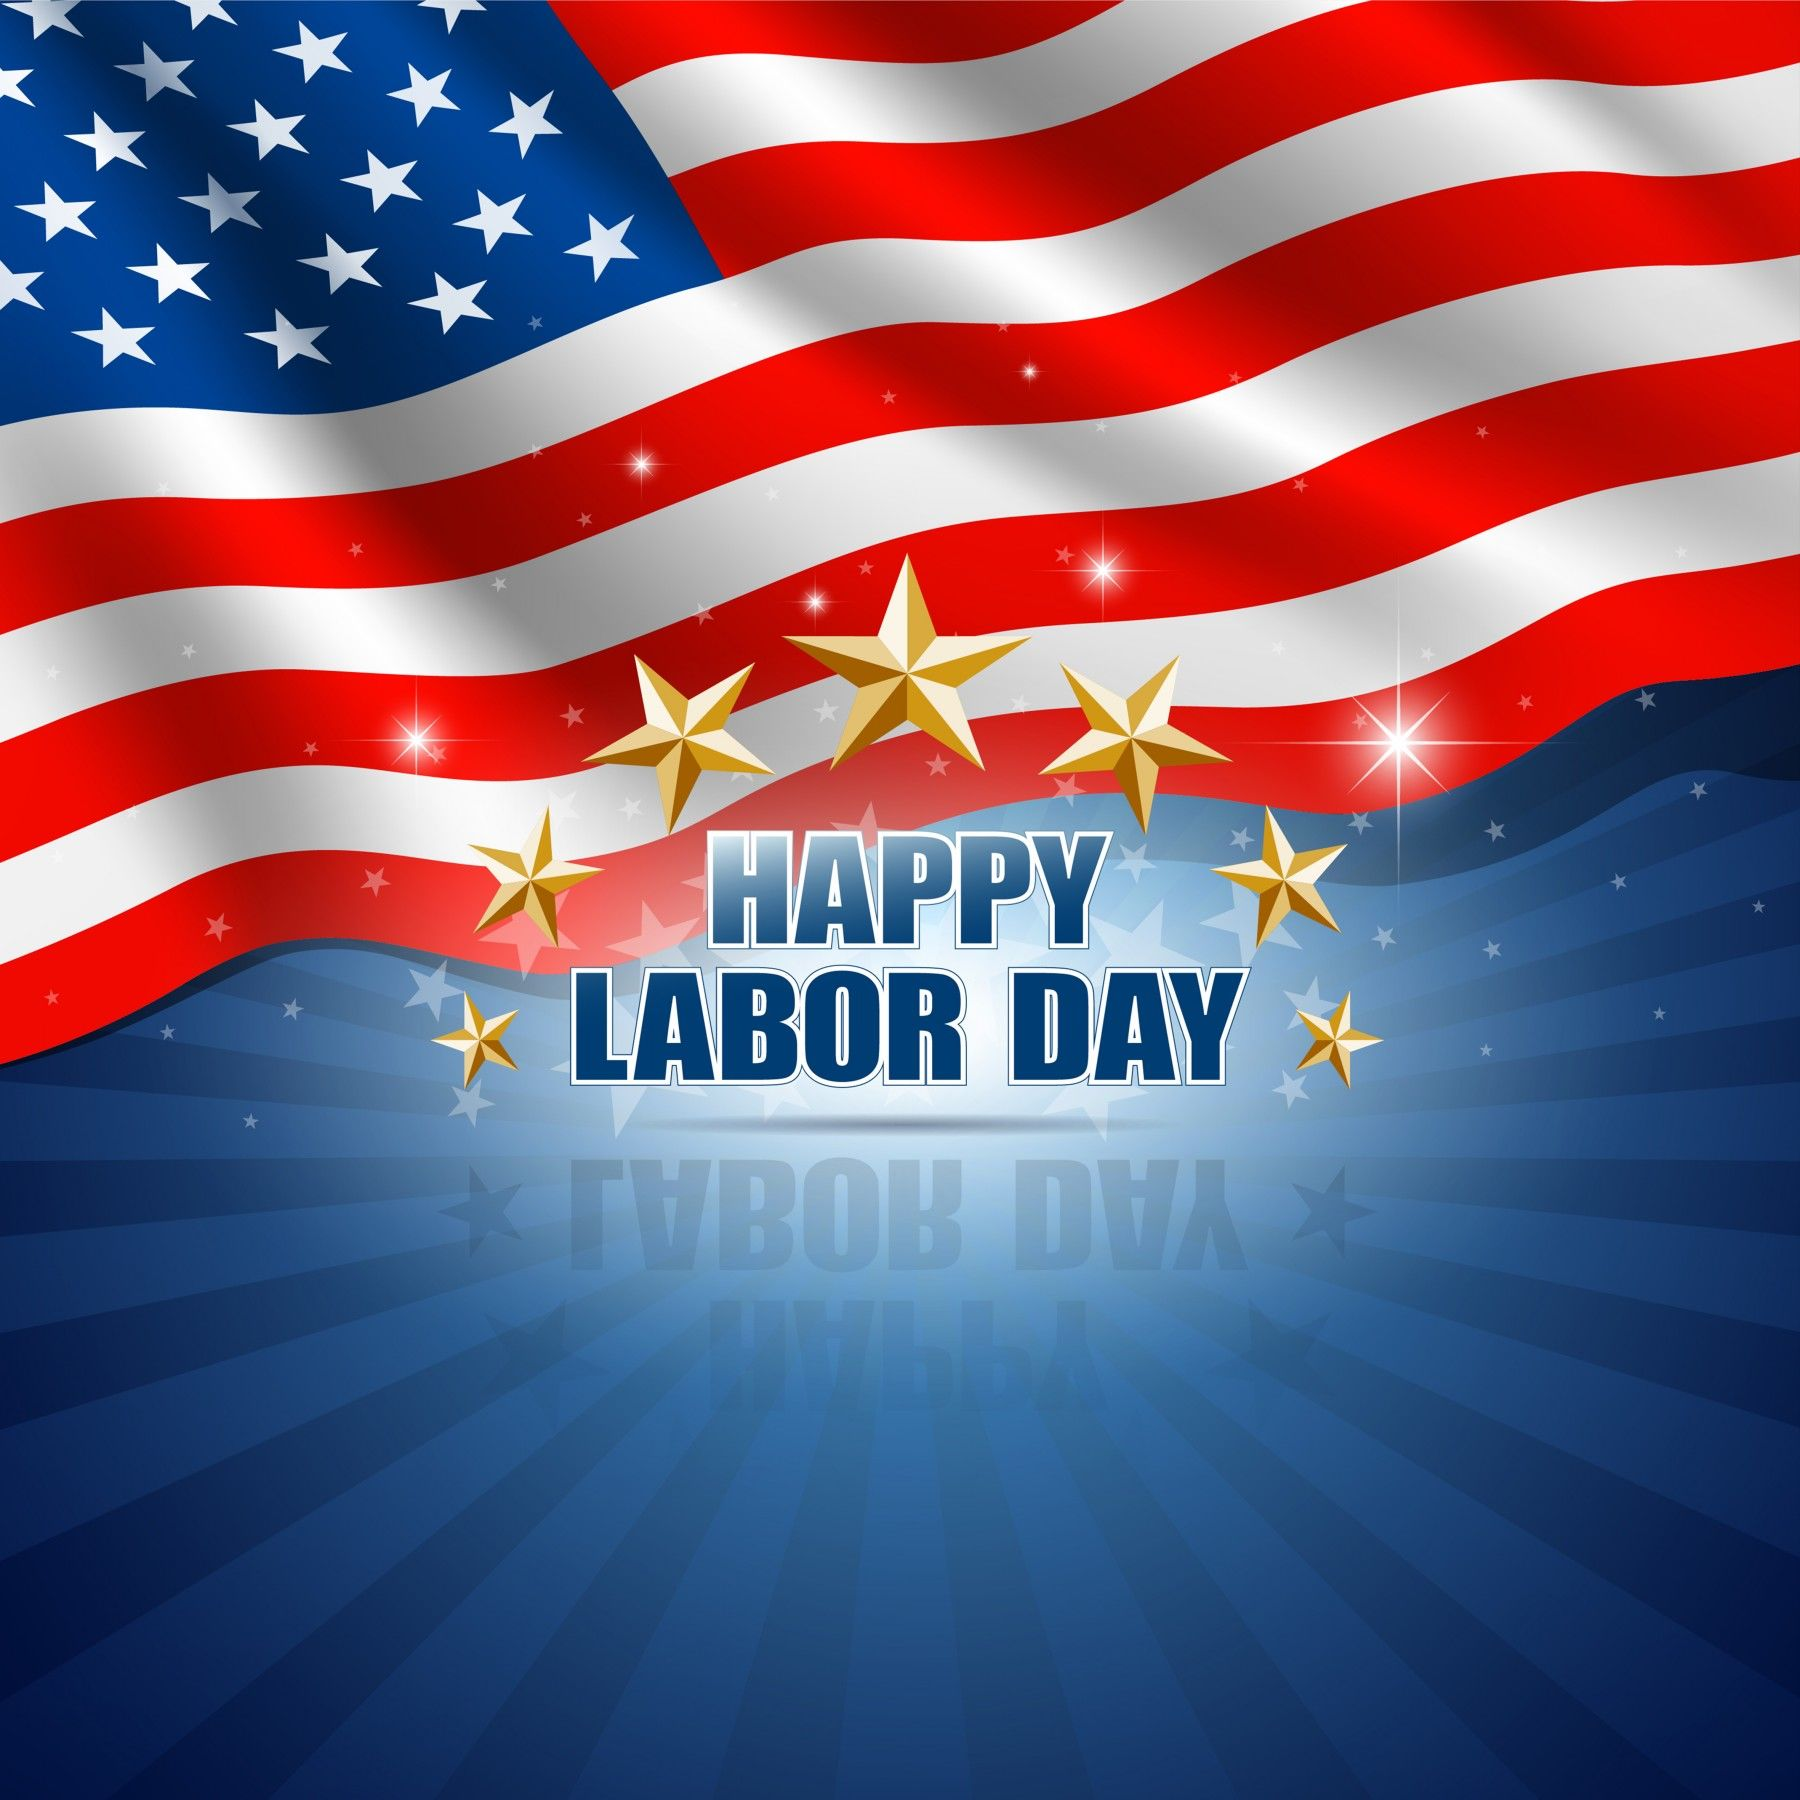 Labor day images and graphics